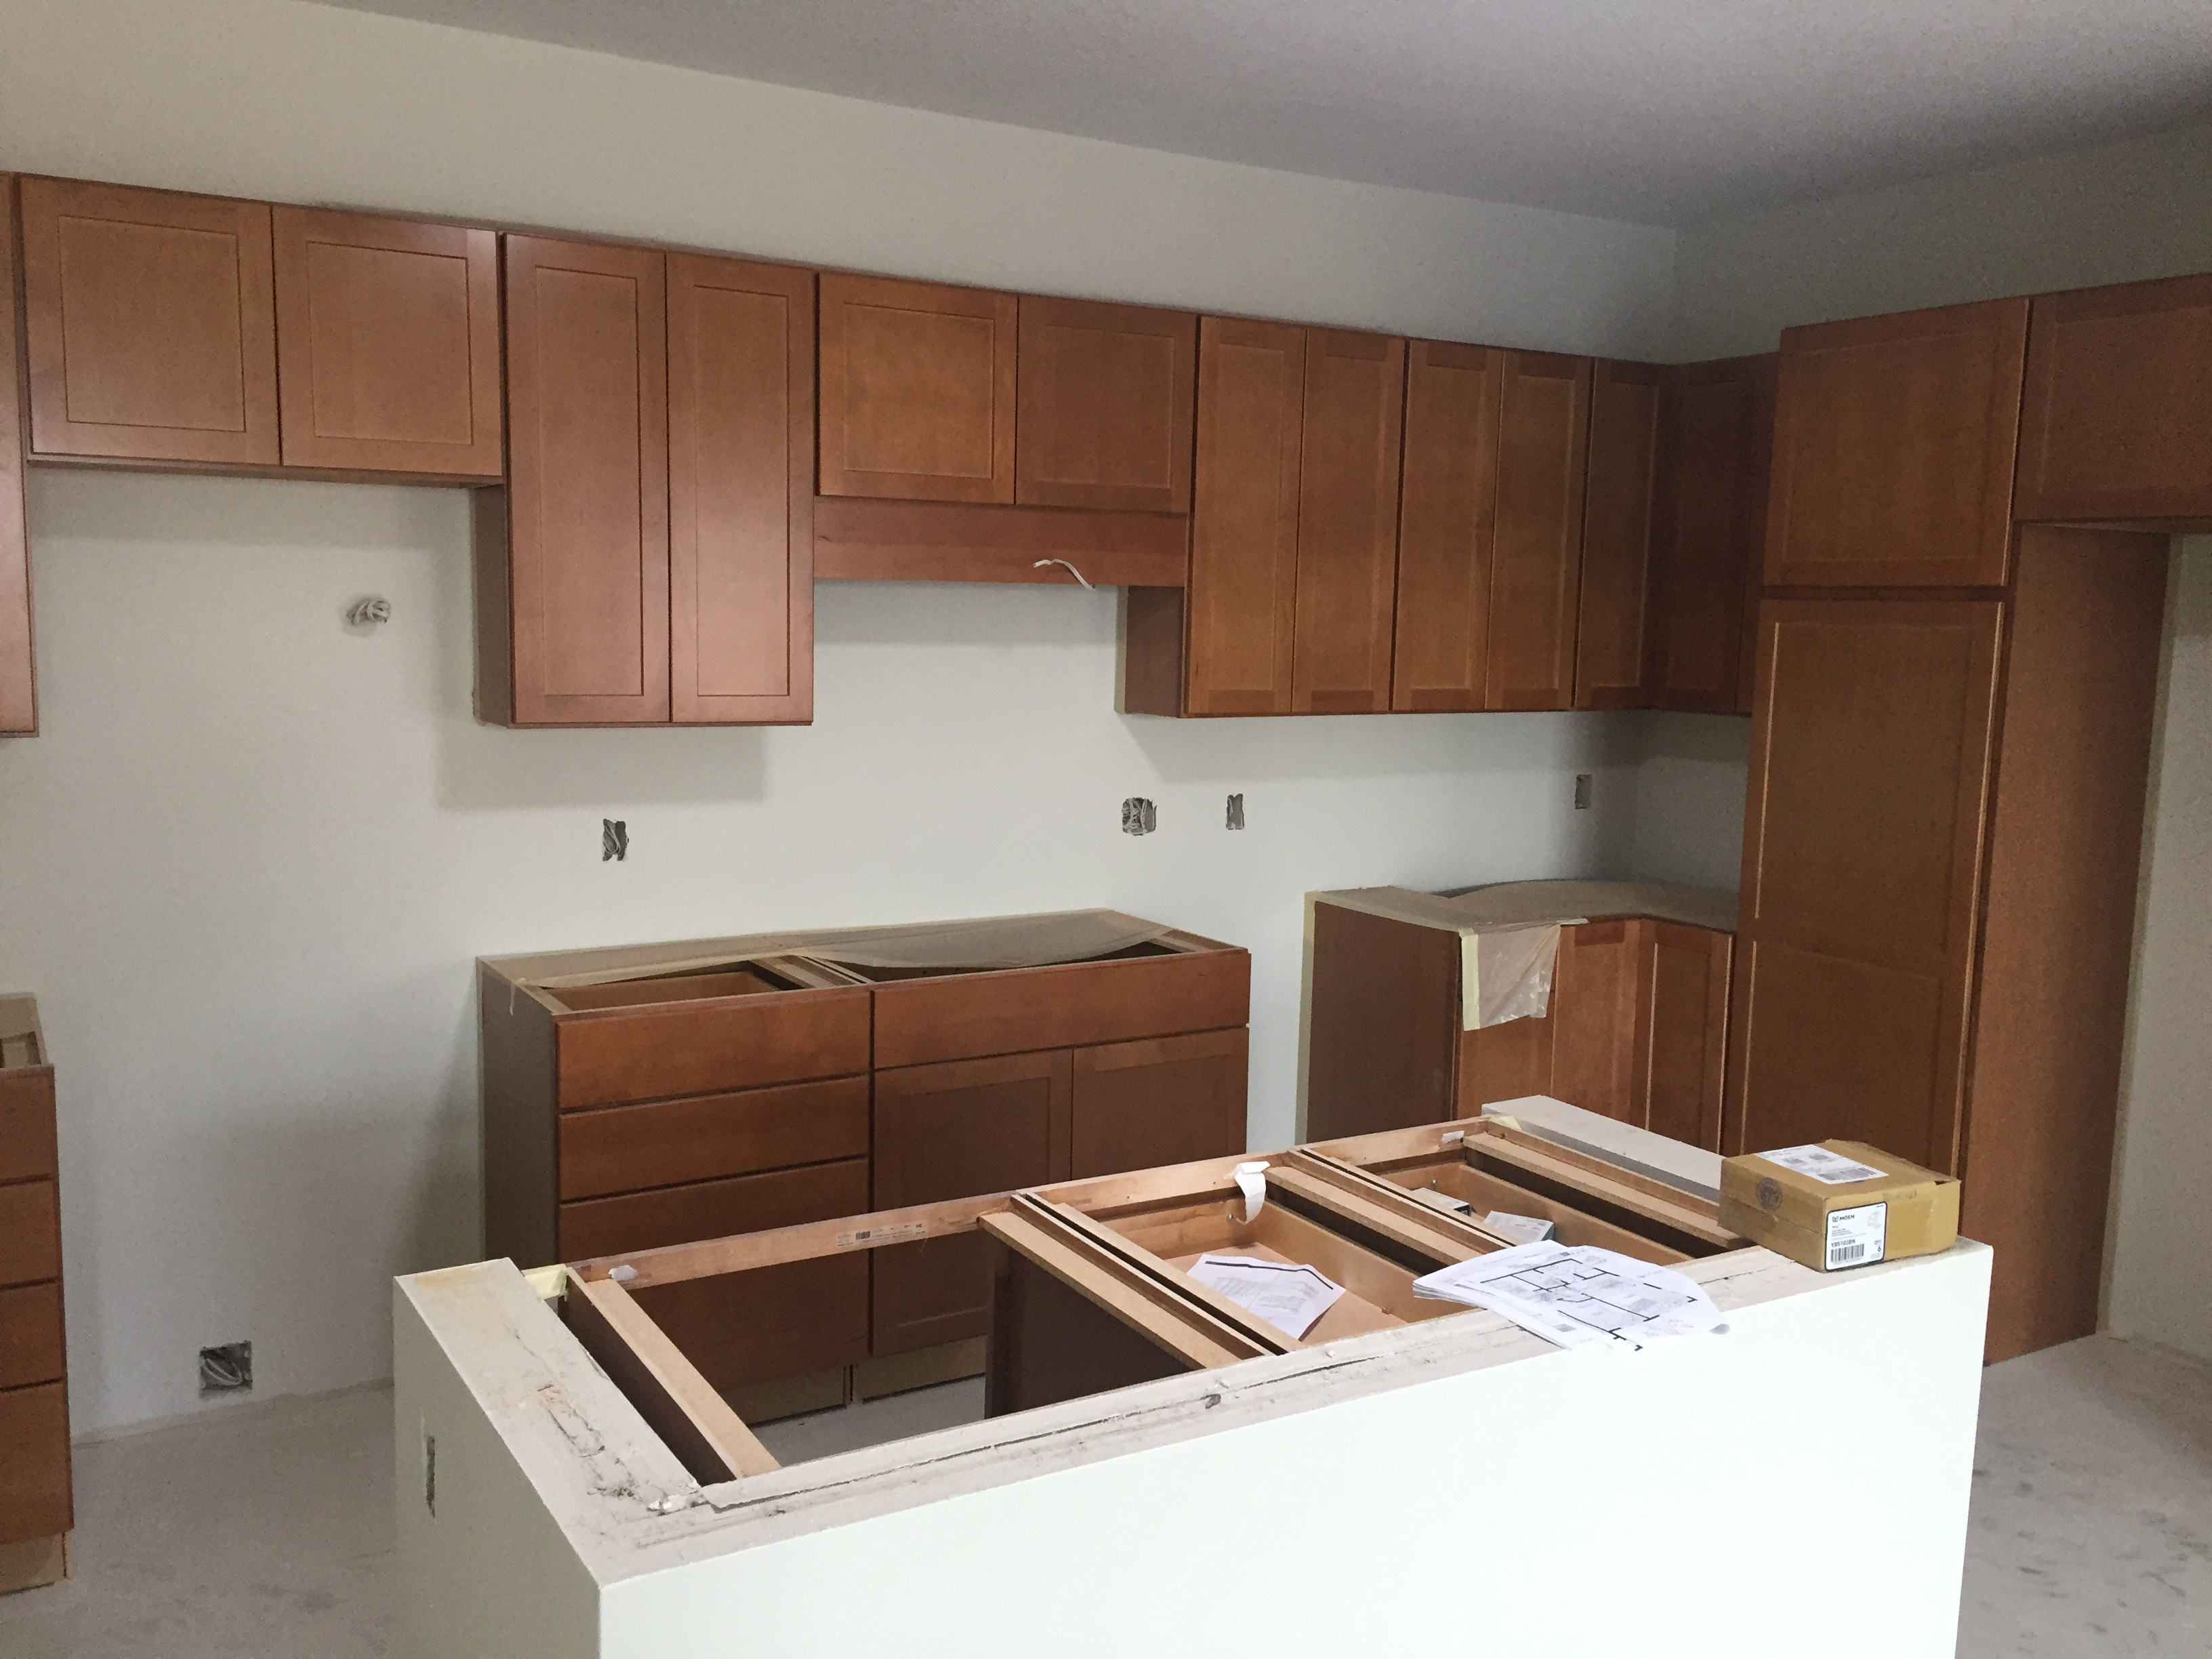 Unit with cabinets and island installed